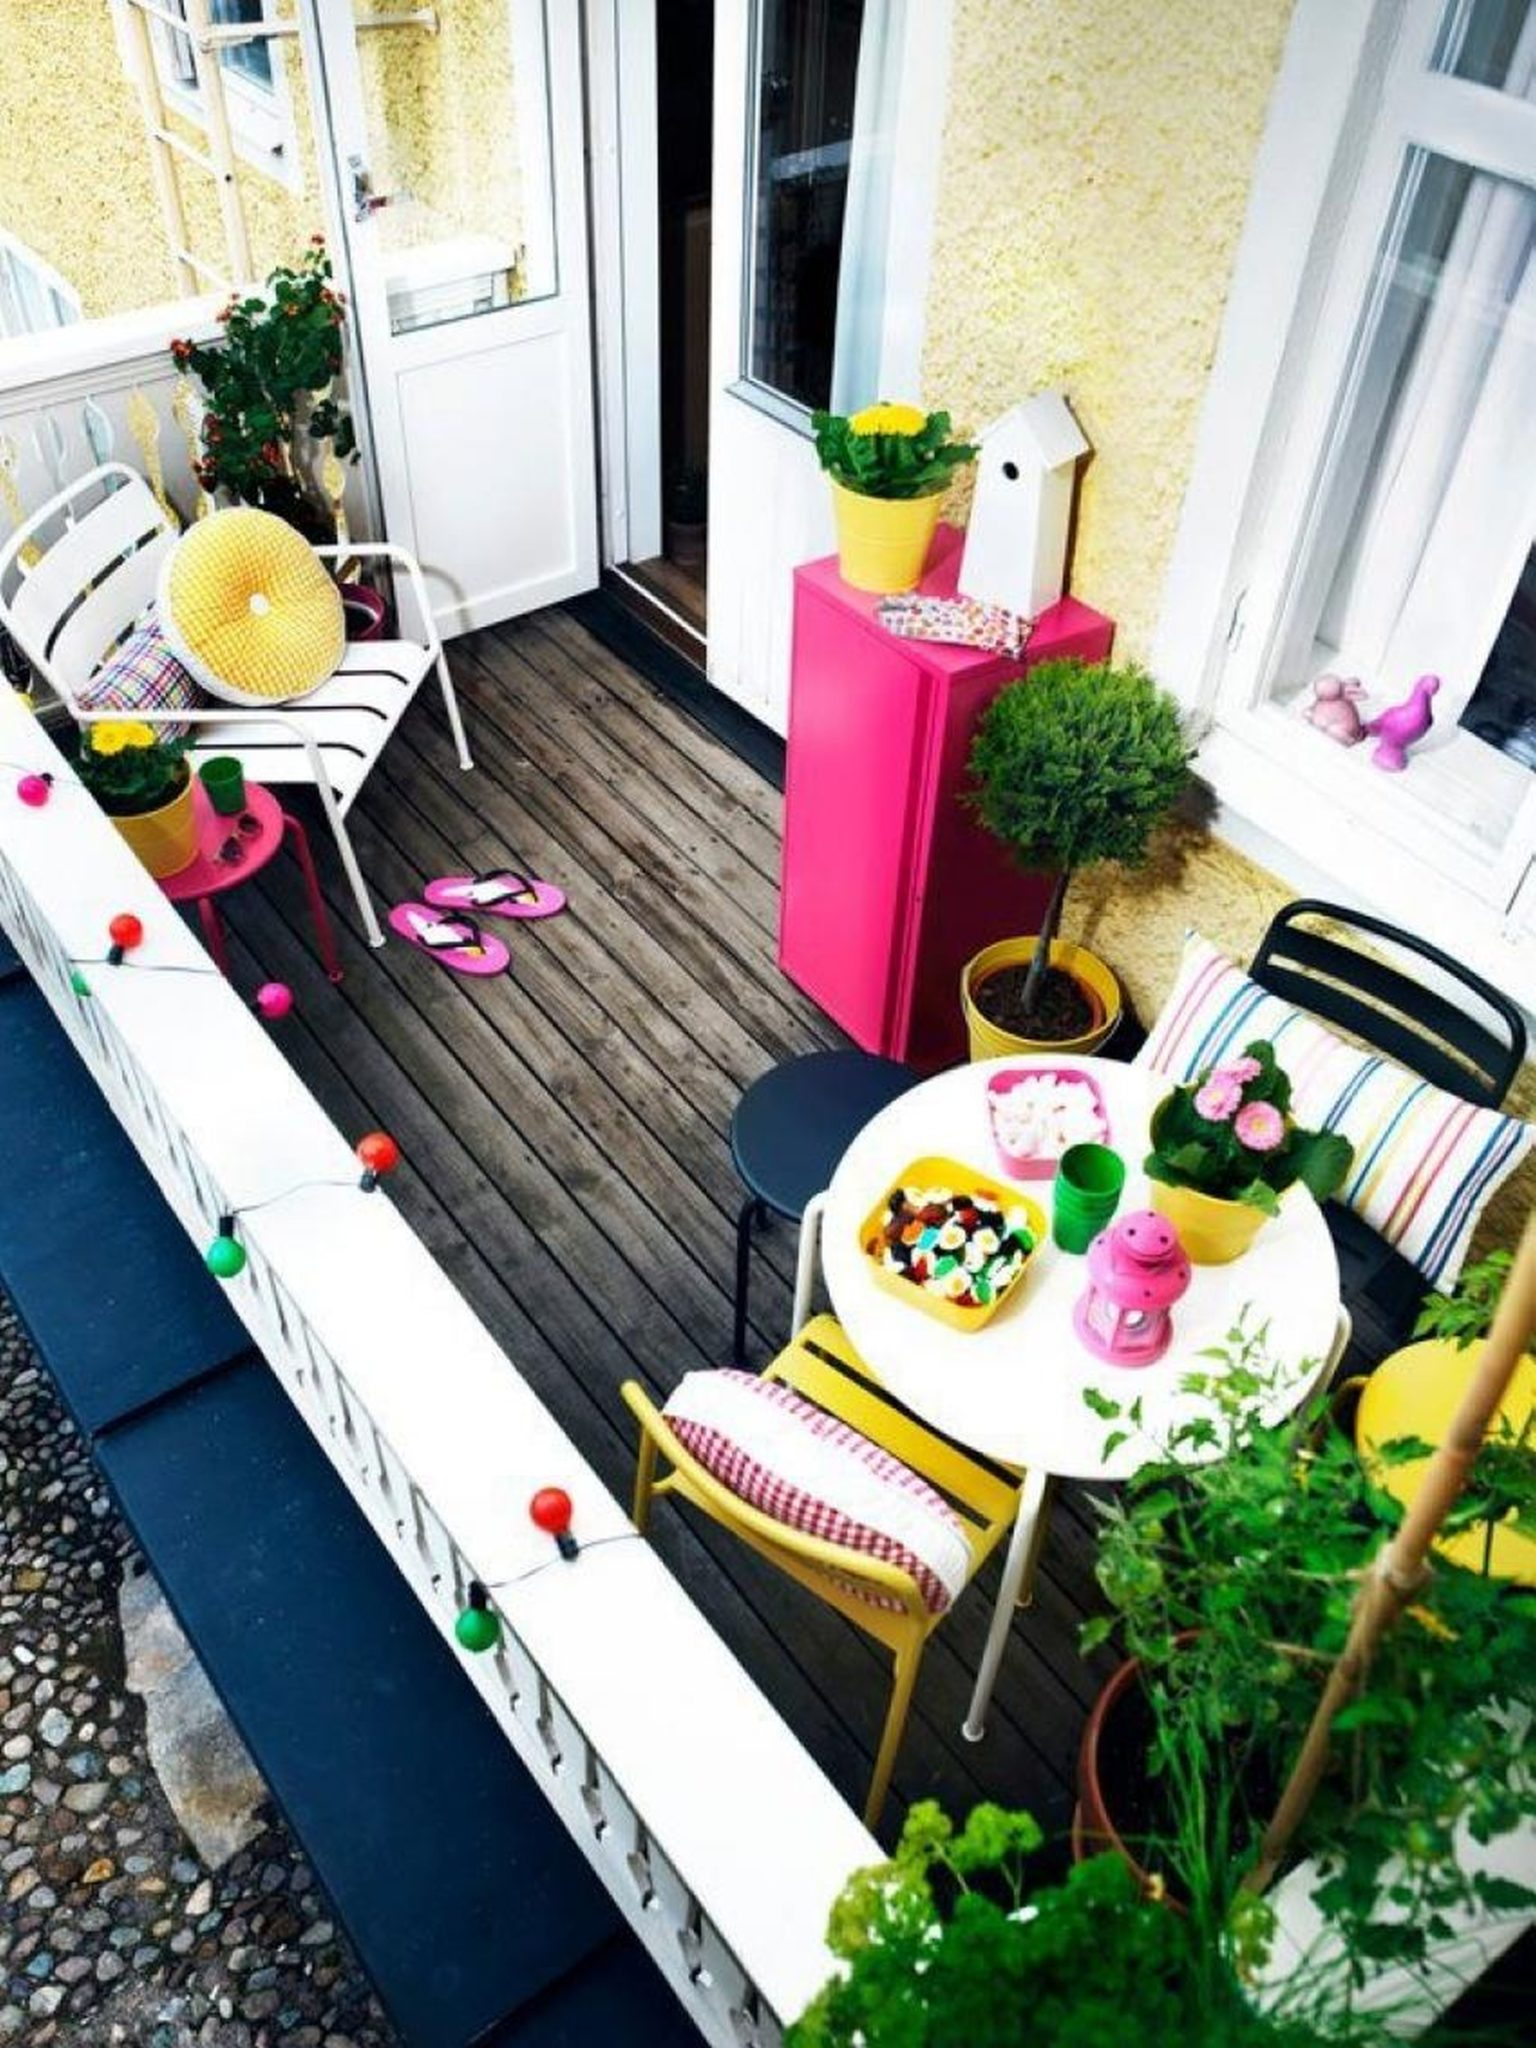 Tiny yellow balcony with a vibrant pink cupboard